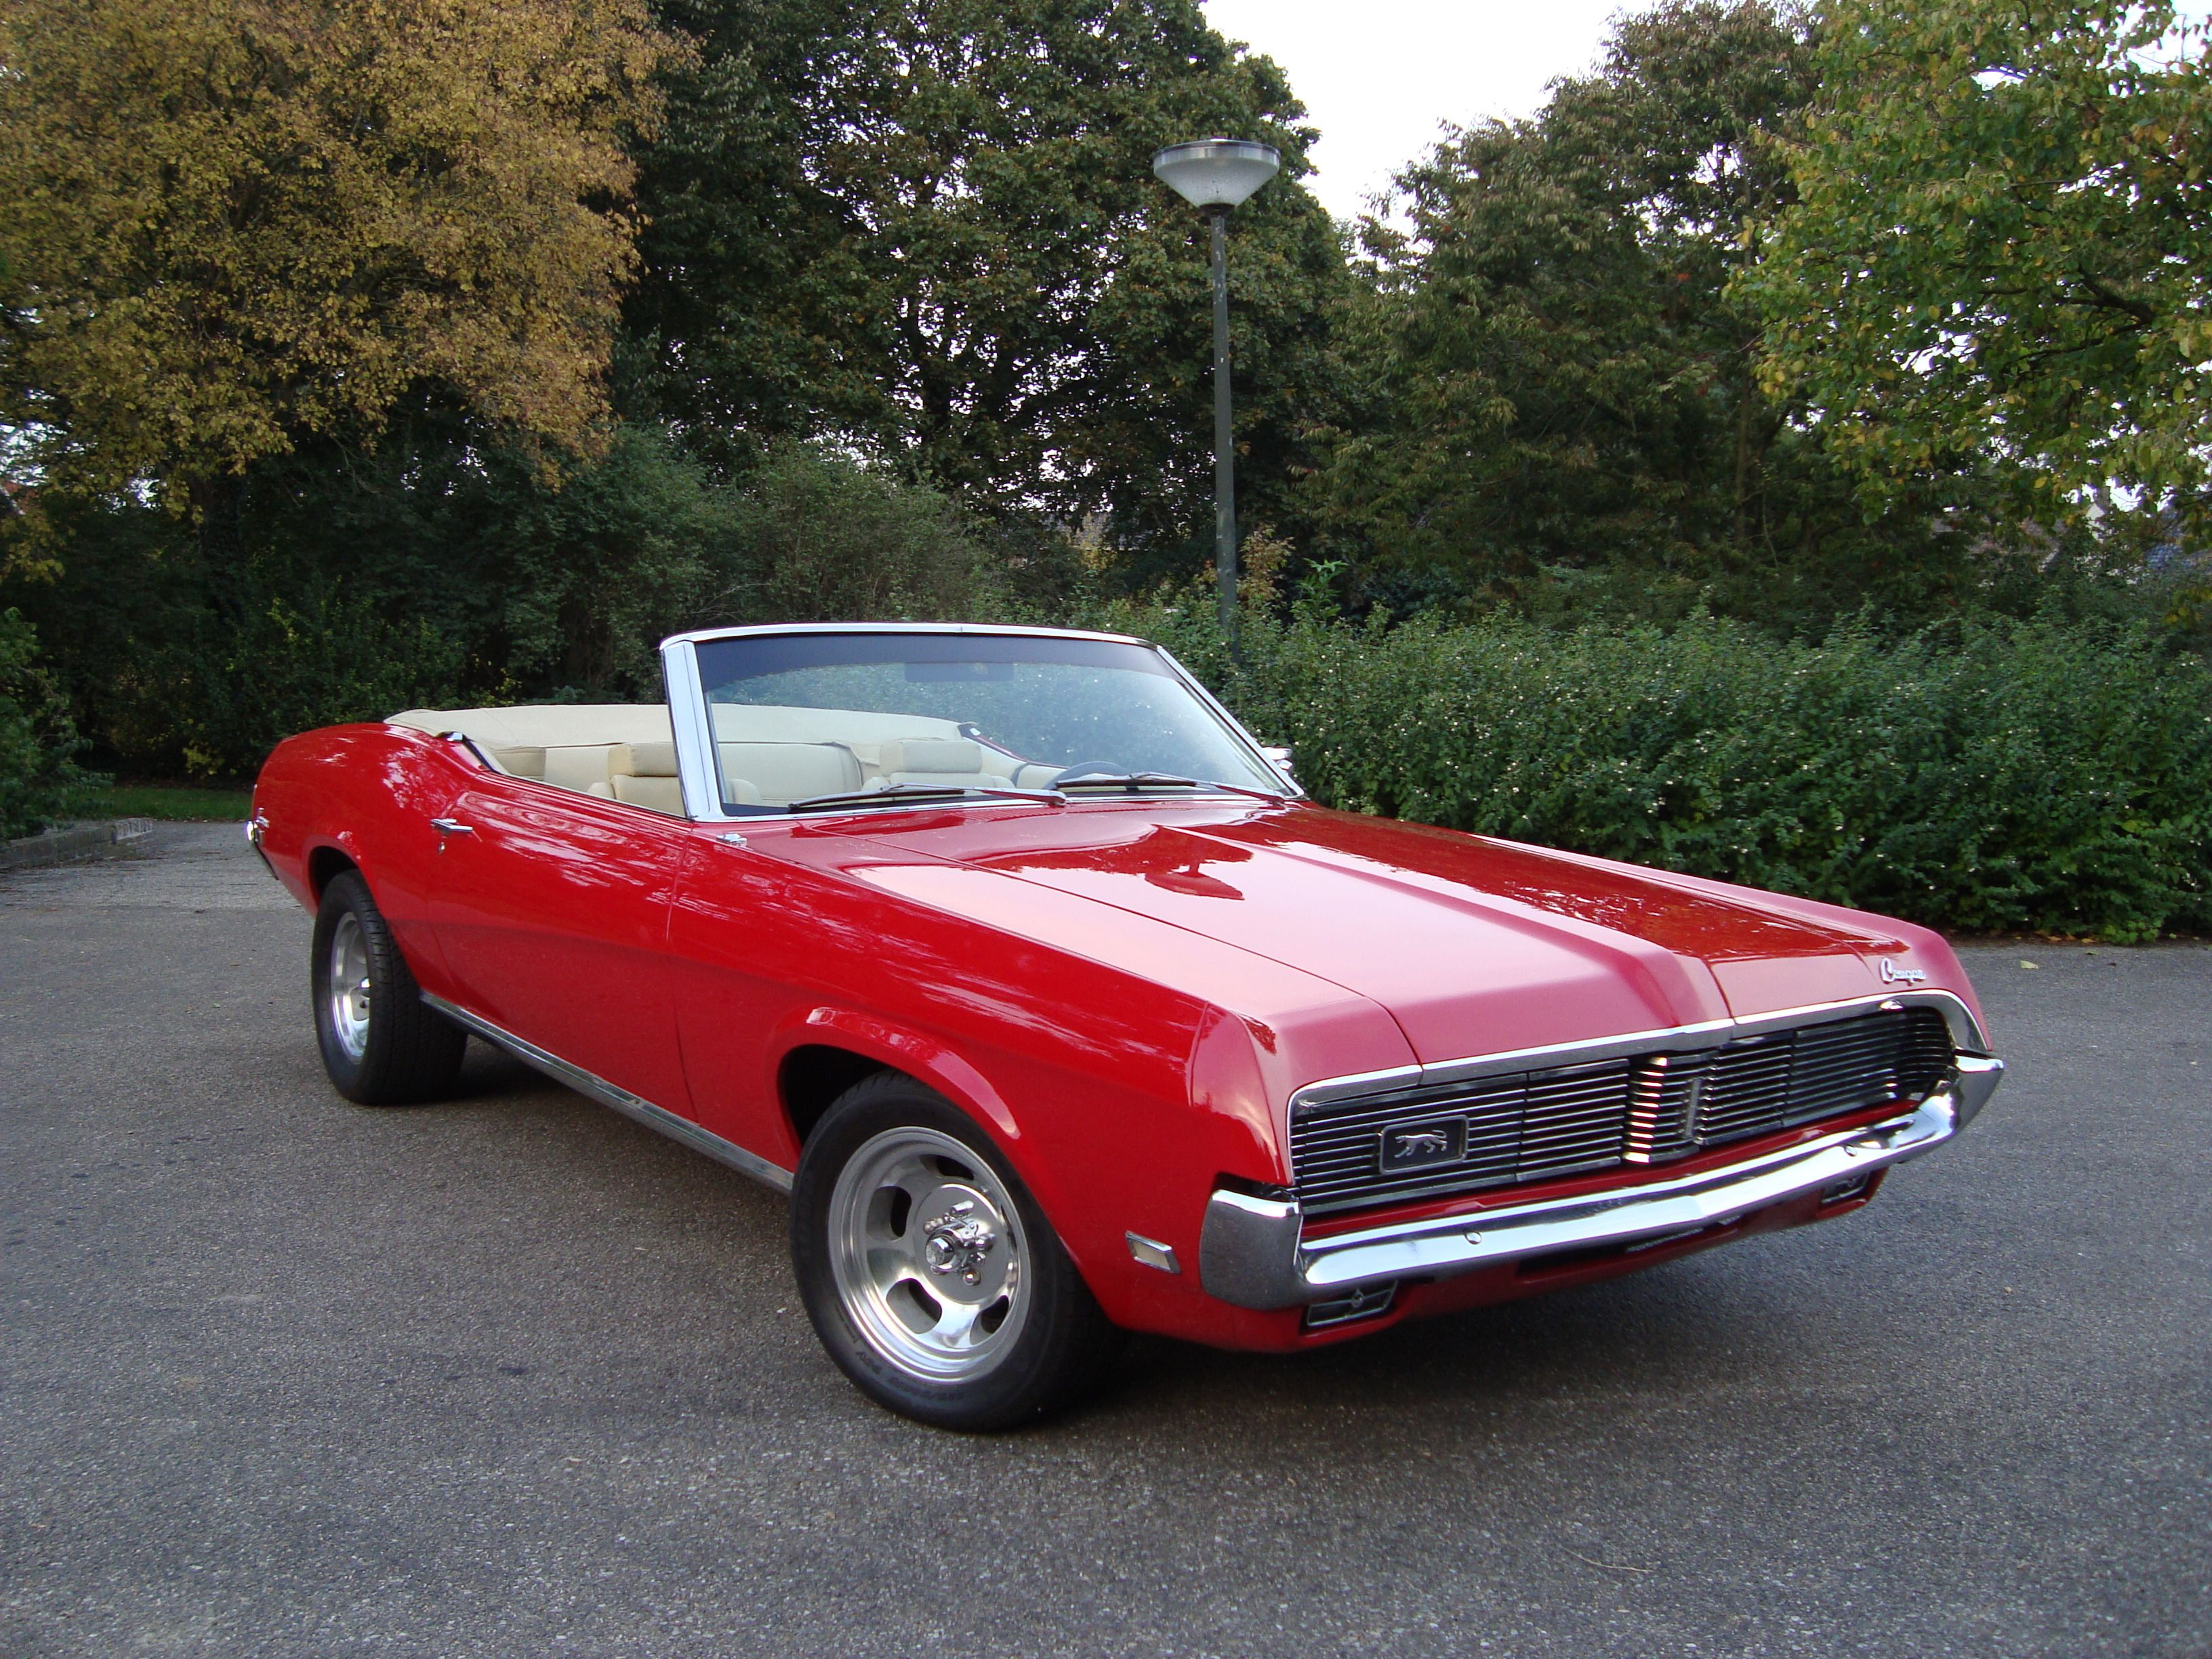 1972 mercury montego n code 429 restomod motorcycle custom - Mercury Cougar Convertible 69 Killer Cat Mercury Cougar Convertible 1969 V8 351 4v Lightweight 67 68 69 70 Ford Mustang Cabrio Muscle Pinteres